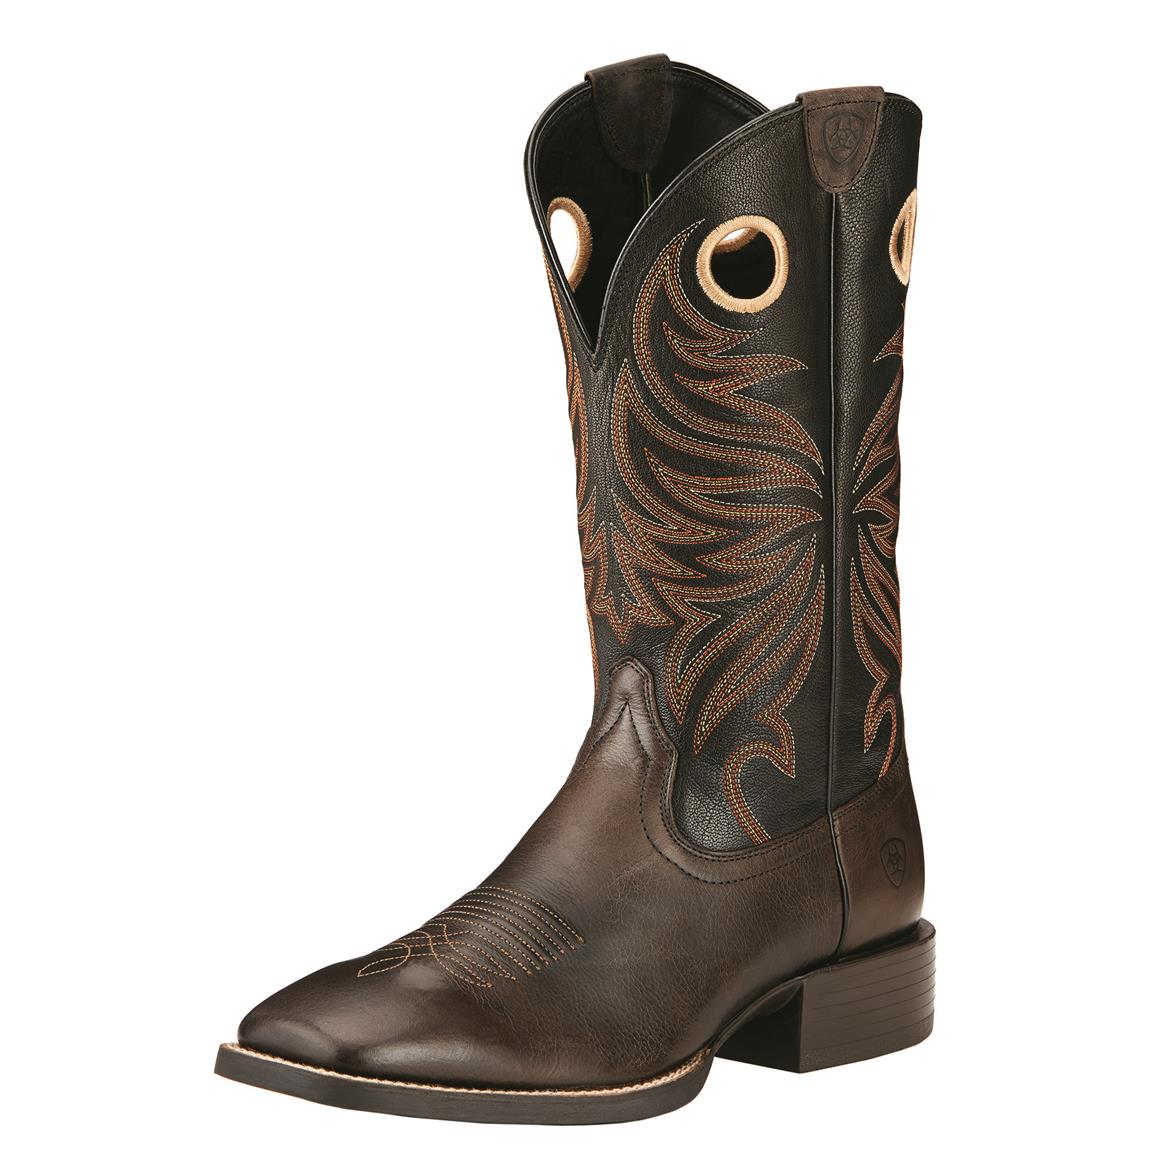 Ariat Men's Sport Rider Western Boots, Chocolate/Black